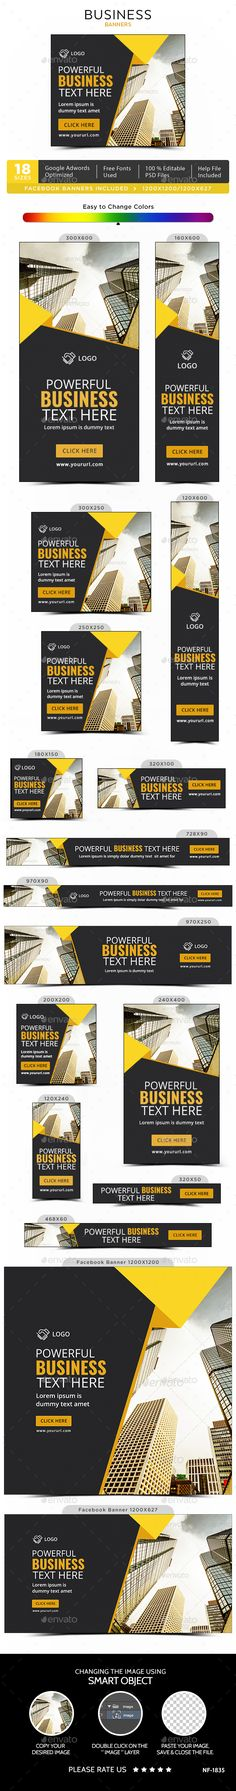 Business Banners — Photoshop PSD #social media #gif banner • Available here → https://graphicriver.net/item/business-banners/20199717?ref=pxcr